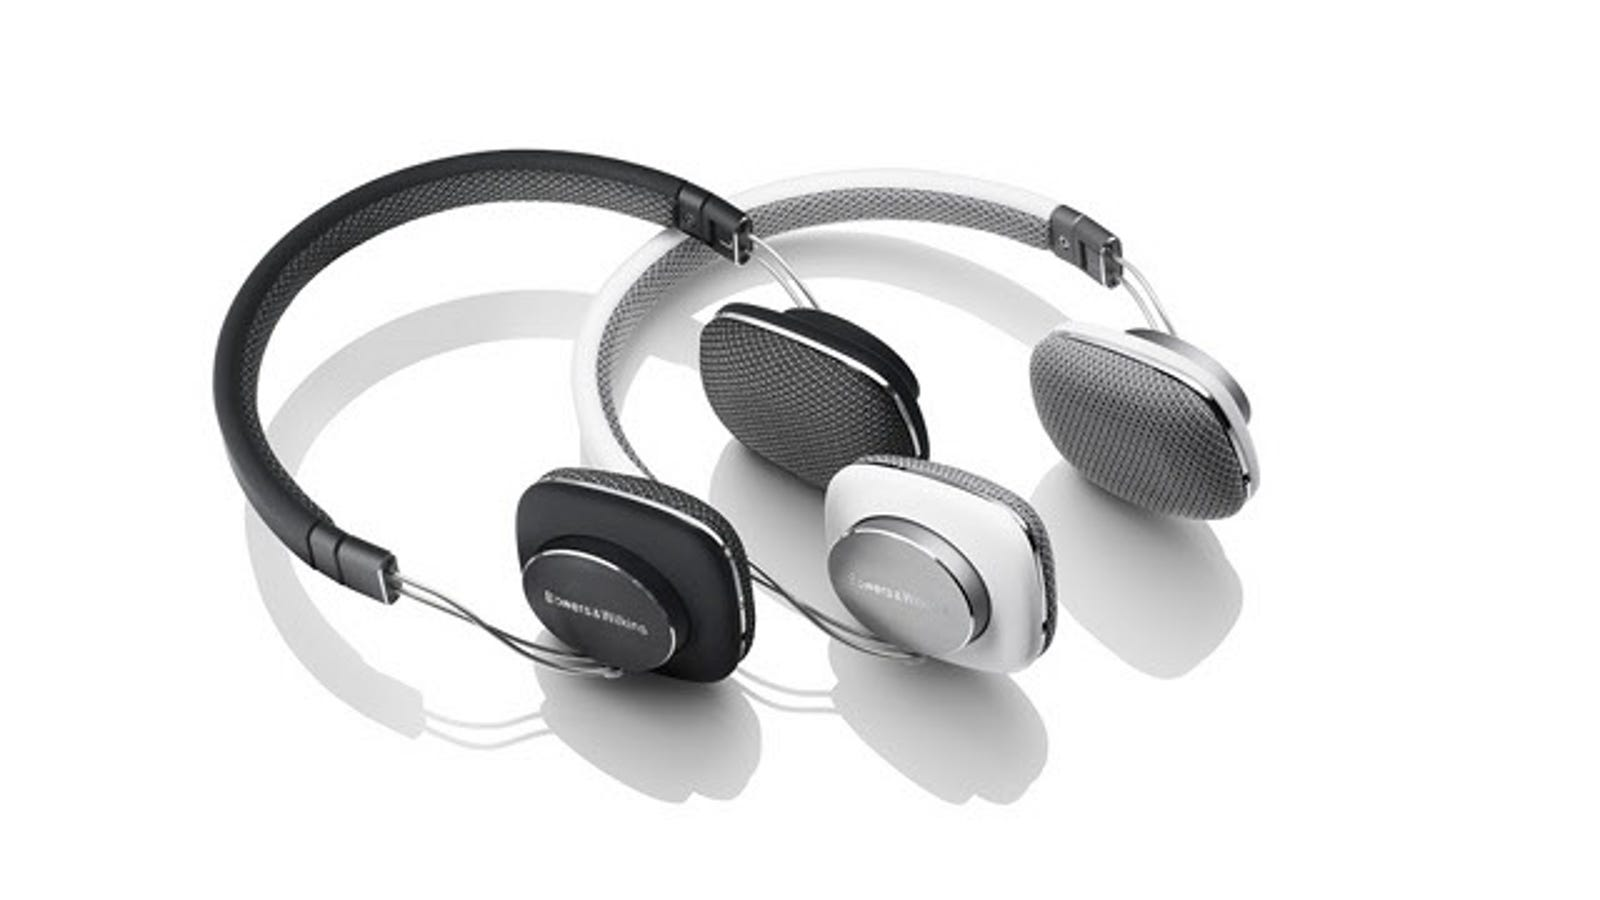 earbuds olive green - Bowers and Wilkins P3 Headphones: Beautiful Design and Beautiful Sound Now Cost Less